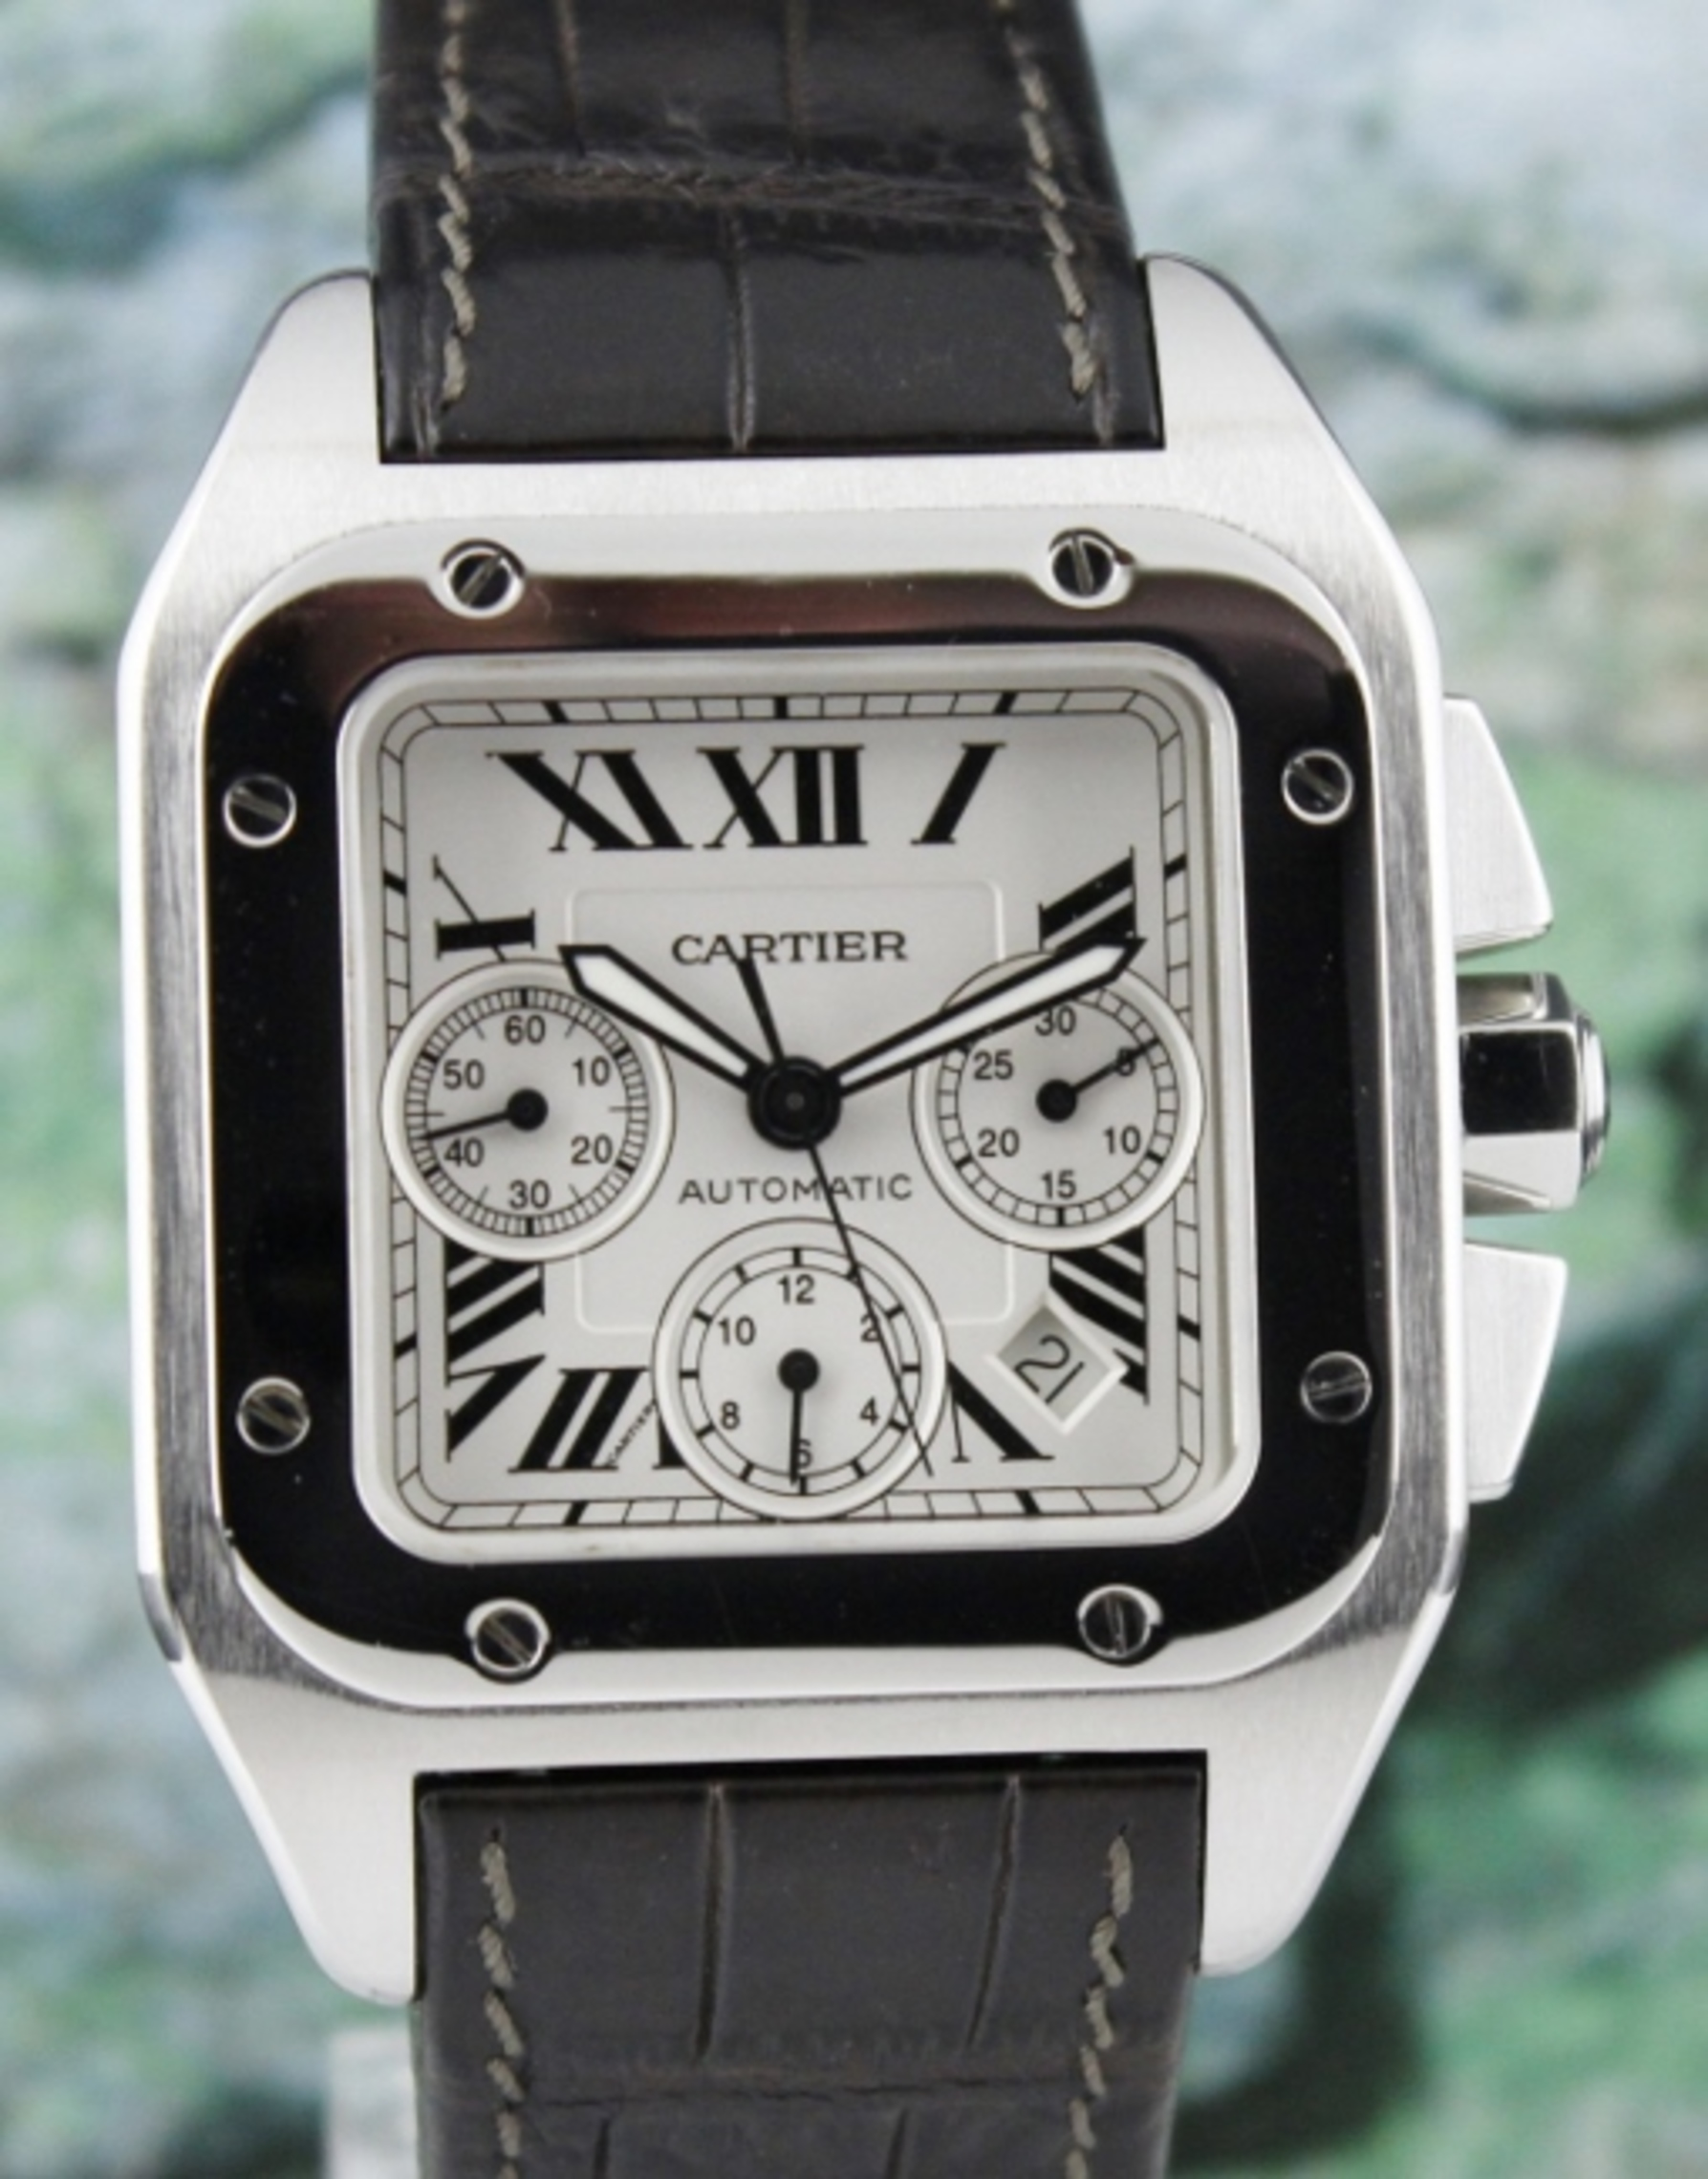 Cartier Santos 100 XL Stainless Steel Chronograph Watch / 2740